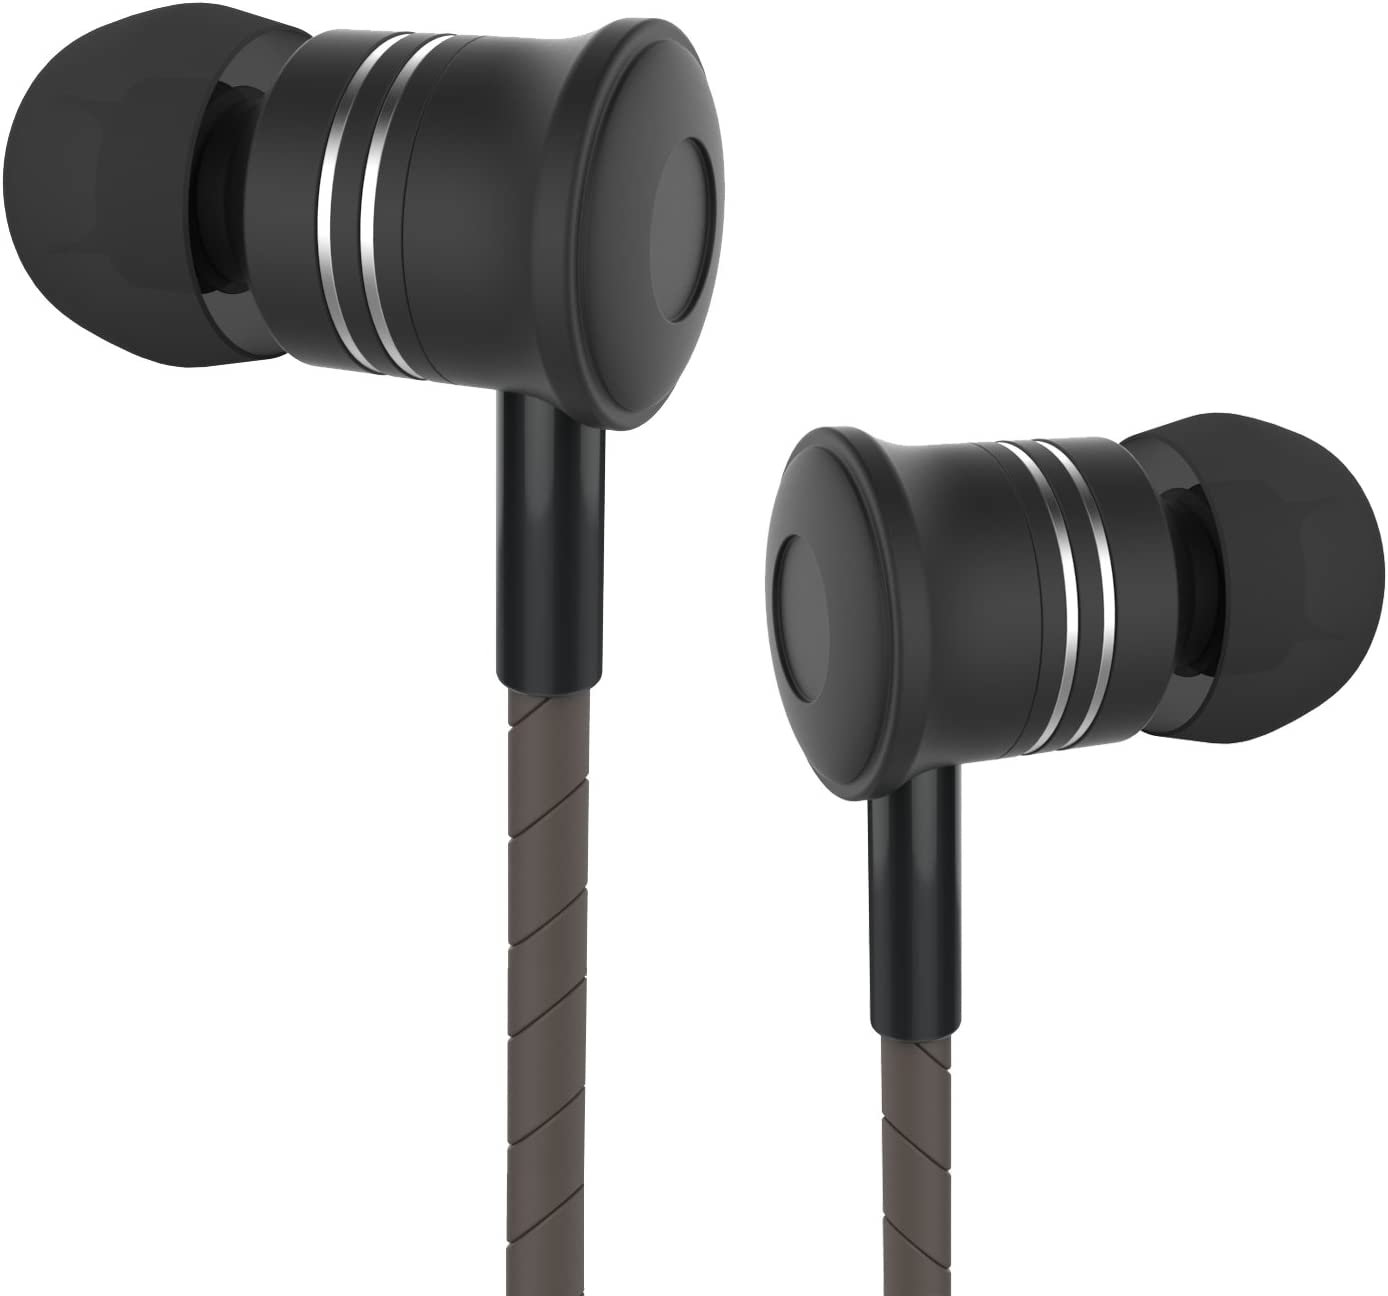 in Ear Headphones Earbud Moniko Corded Headsets with Microphone Stereo Wired Headphone Dynamic Crystal Clear Sound 3.5mm for iPhone Android iPod iPad Laptop Mac Tablet Black,Good